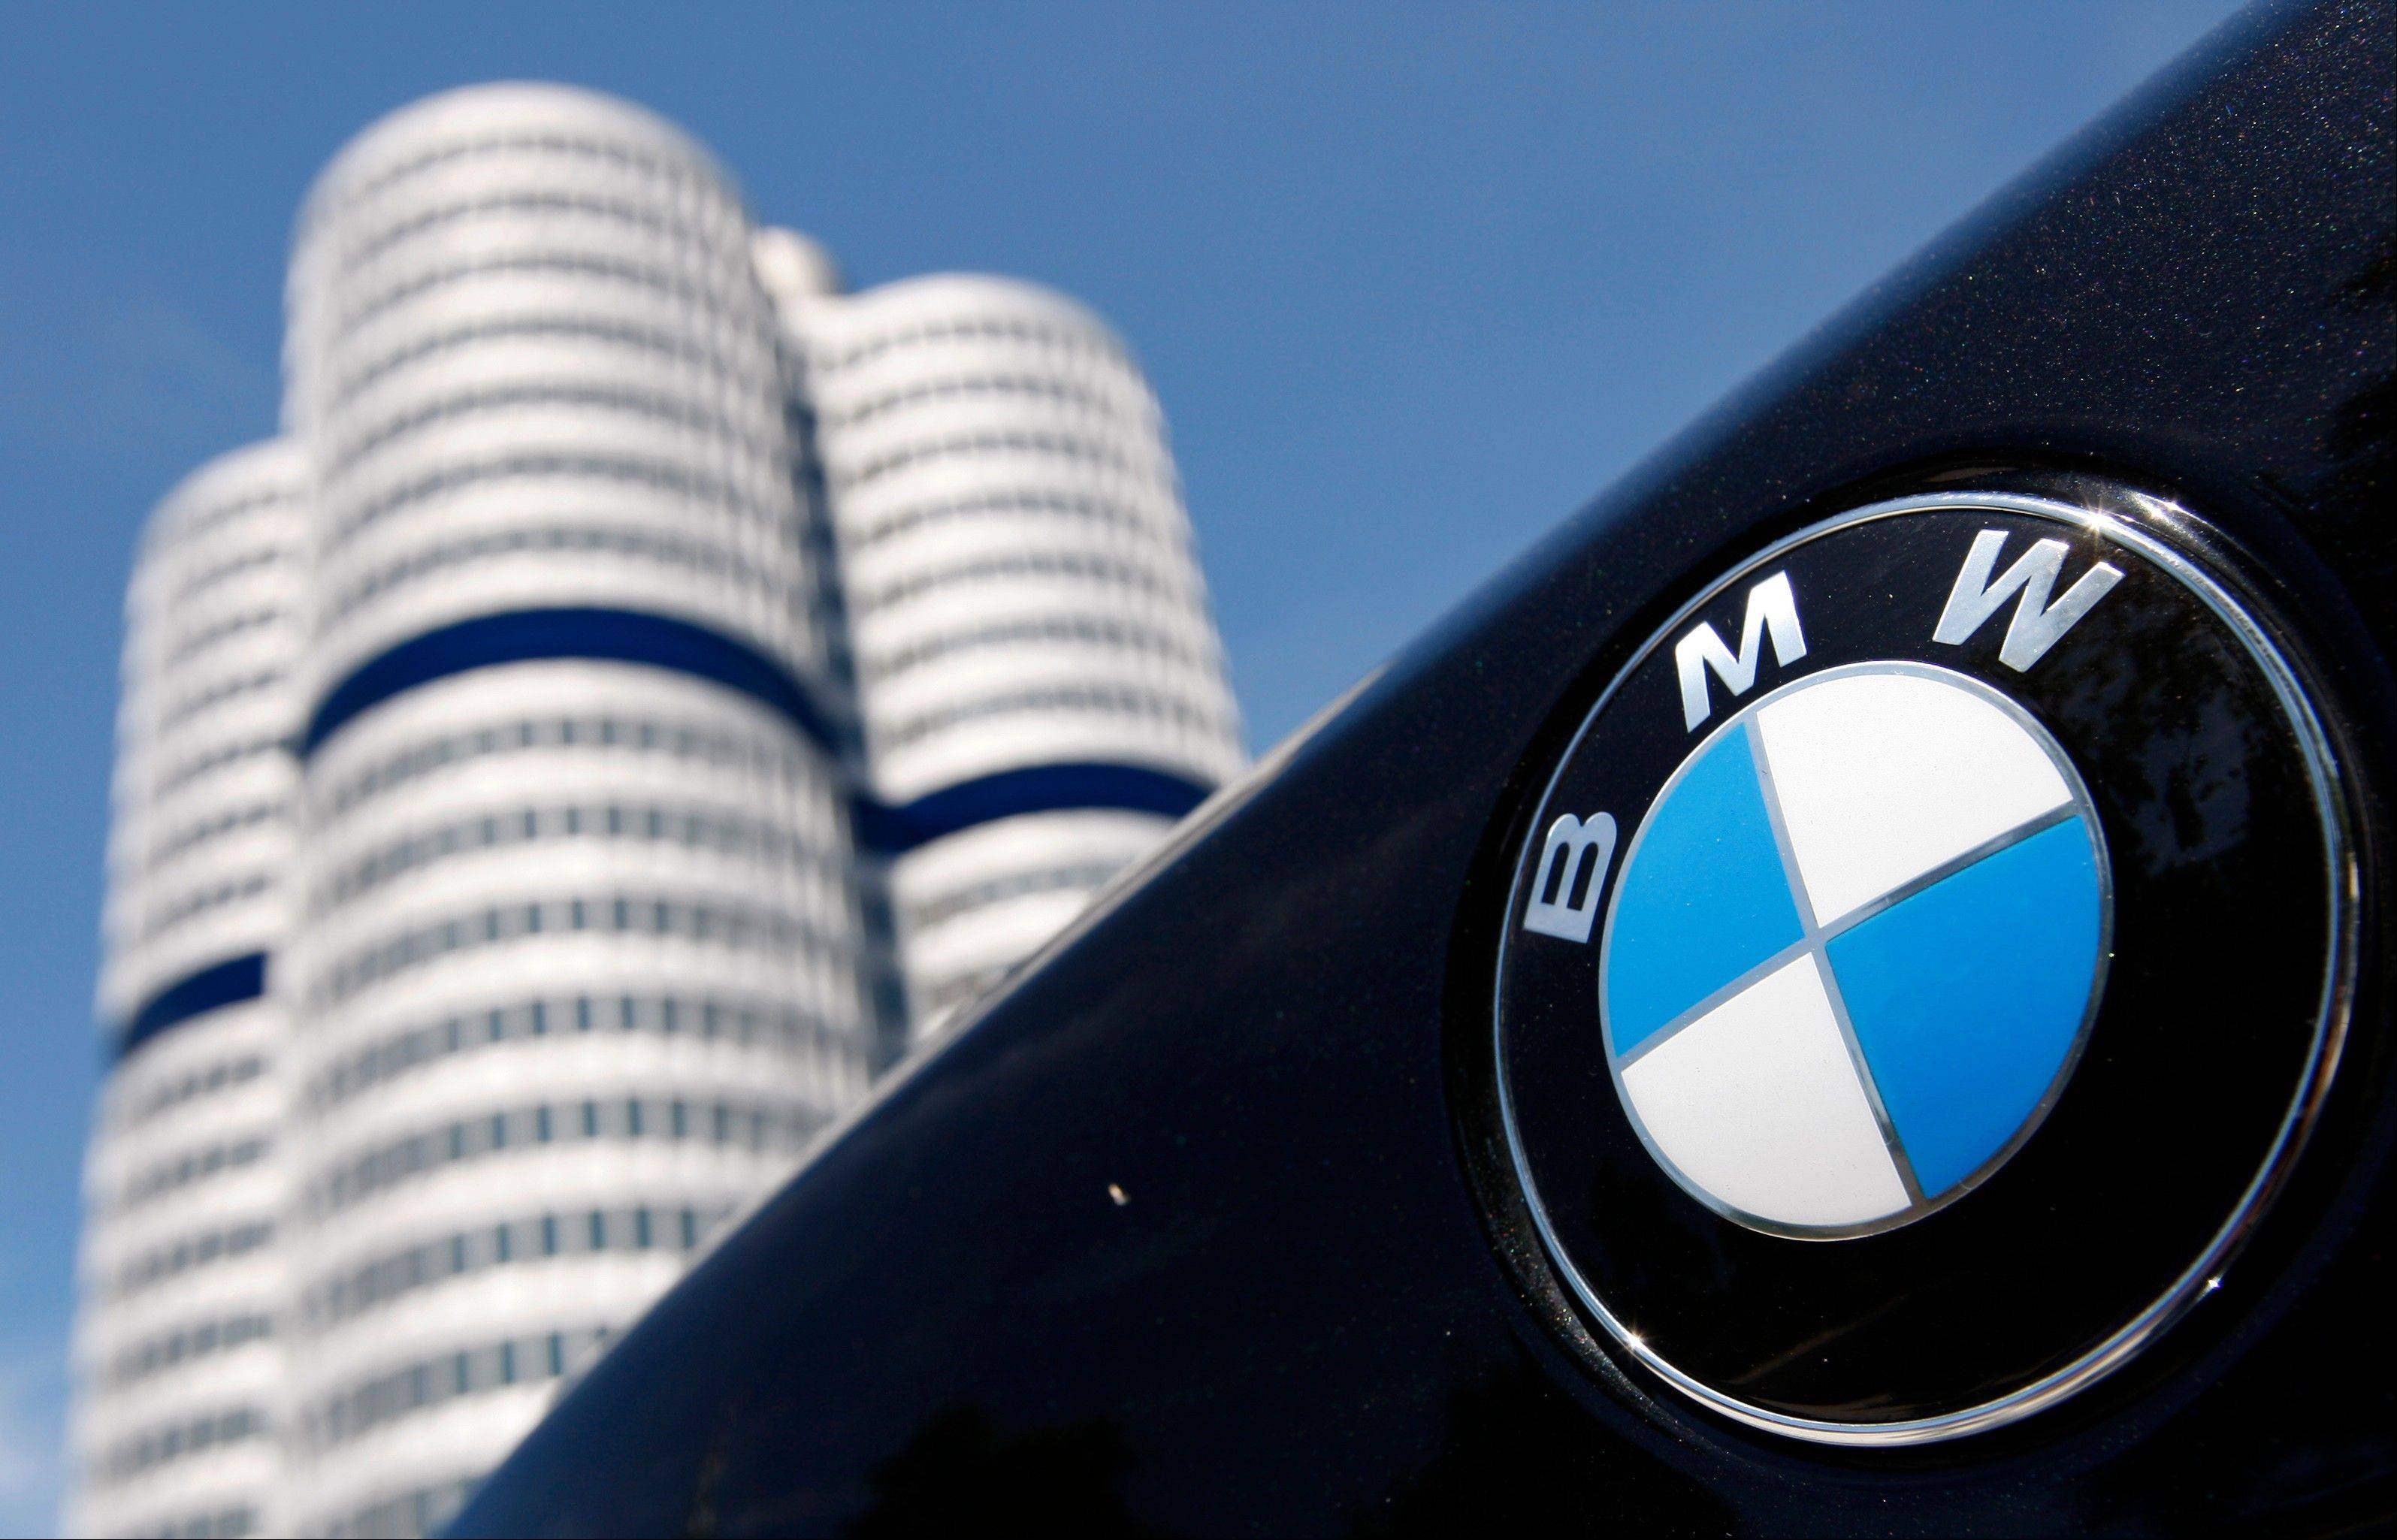 BMW will sell cars over the Web for the first time as the world's largest maker of luxury vehicles seeks an inexpensive way to reach more buyers to recoup spending on its electric models. A major concern for the carmaker is if the experiment fails or does not immediately work as well as expected.